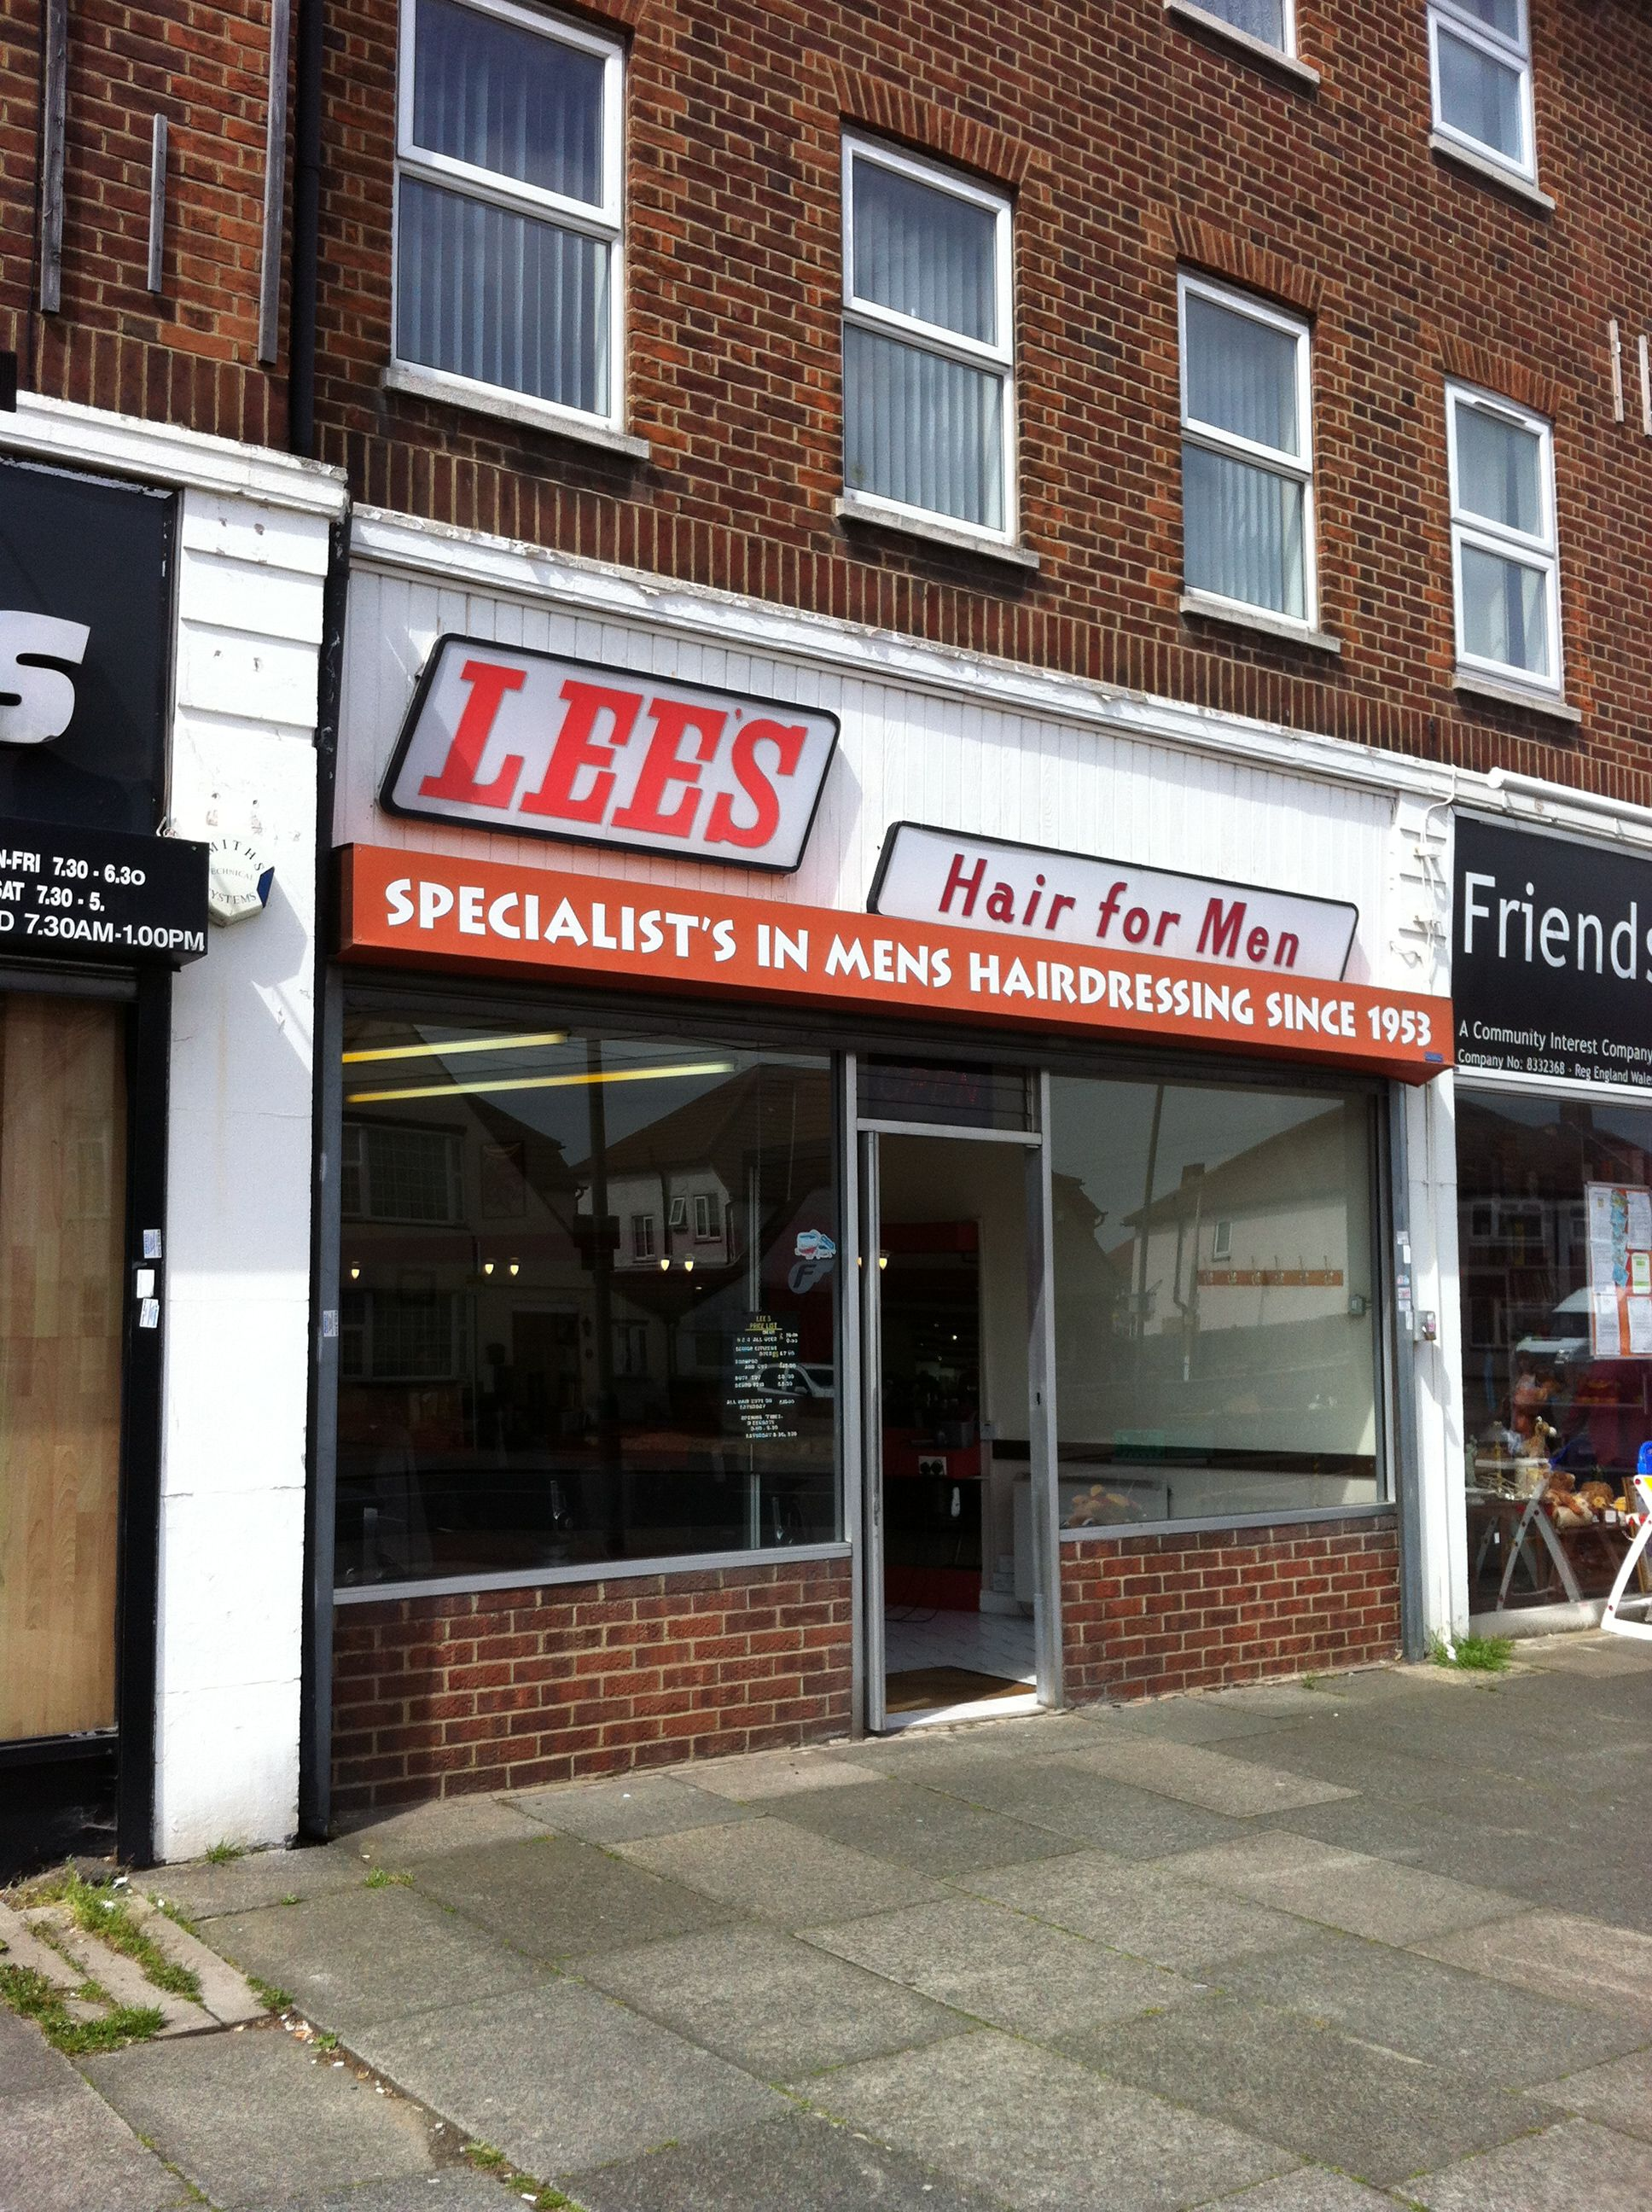 The Name Of The Shop Has Correct Apostrophe As It Is Lee S